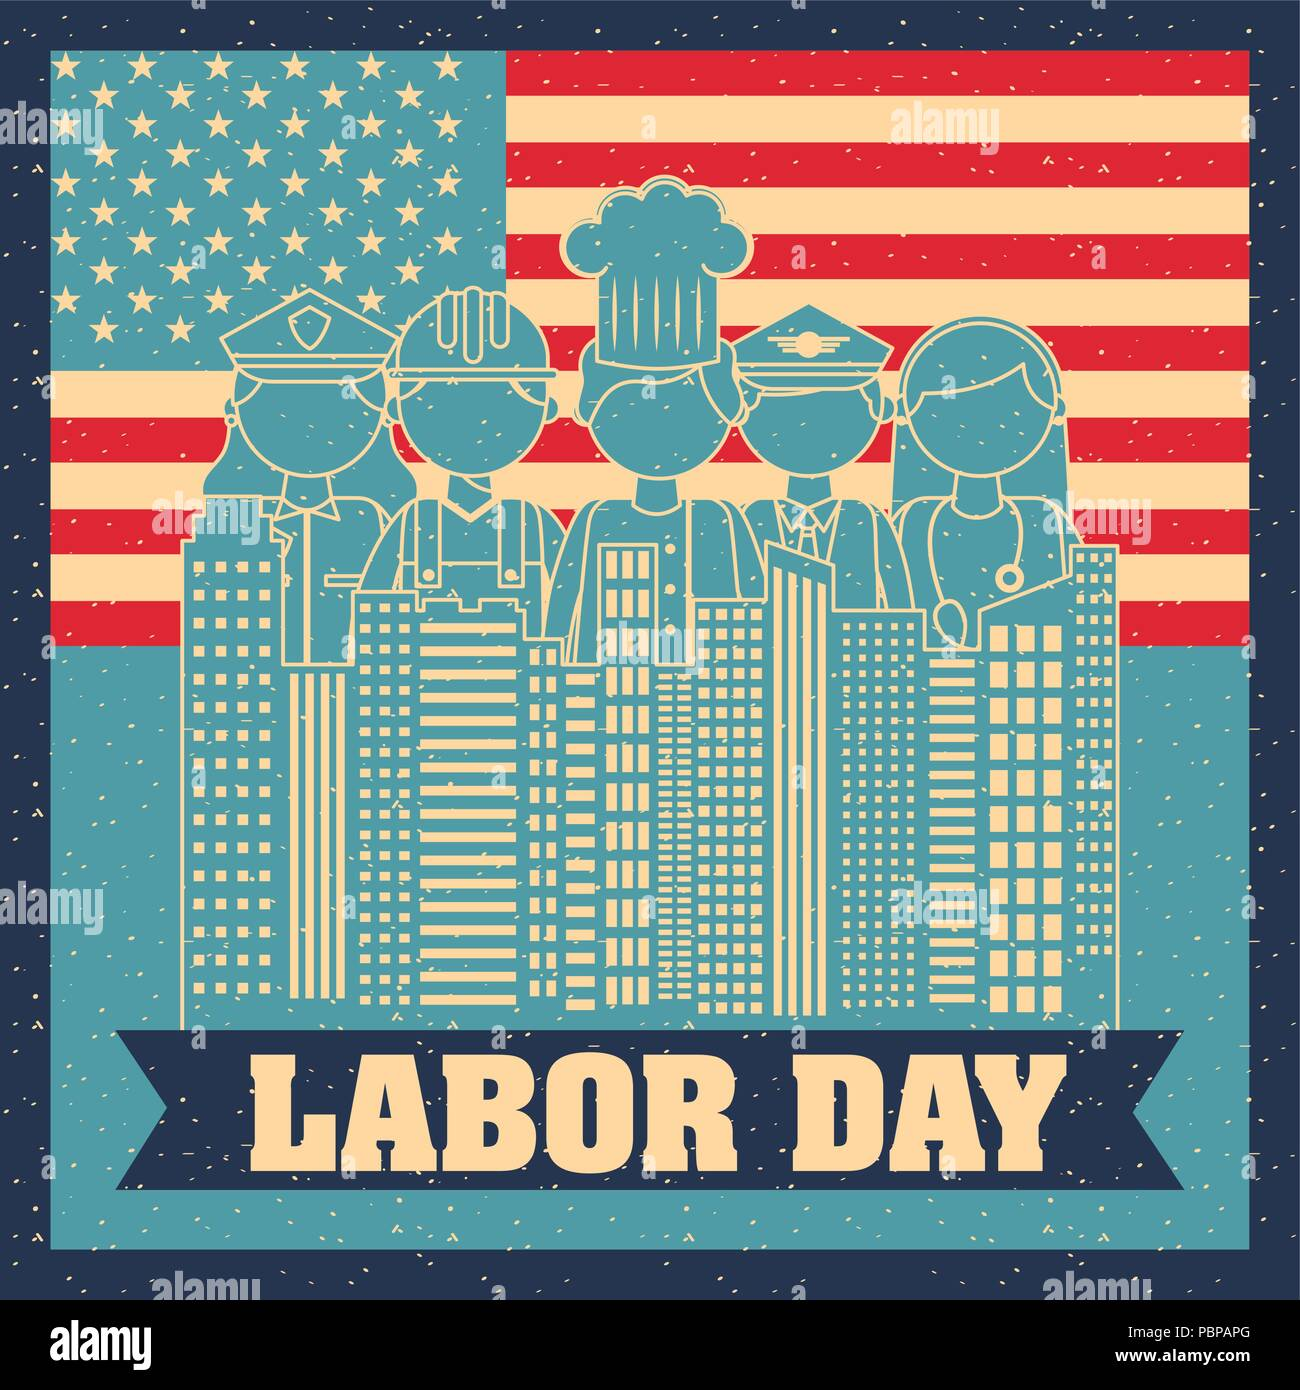 labor day card - Stock Image